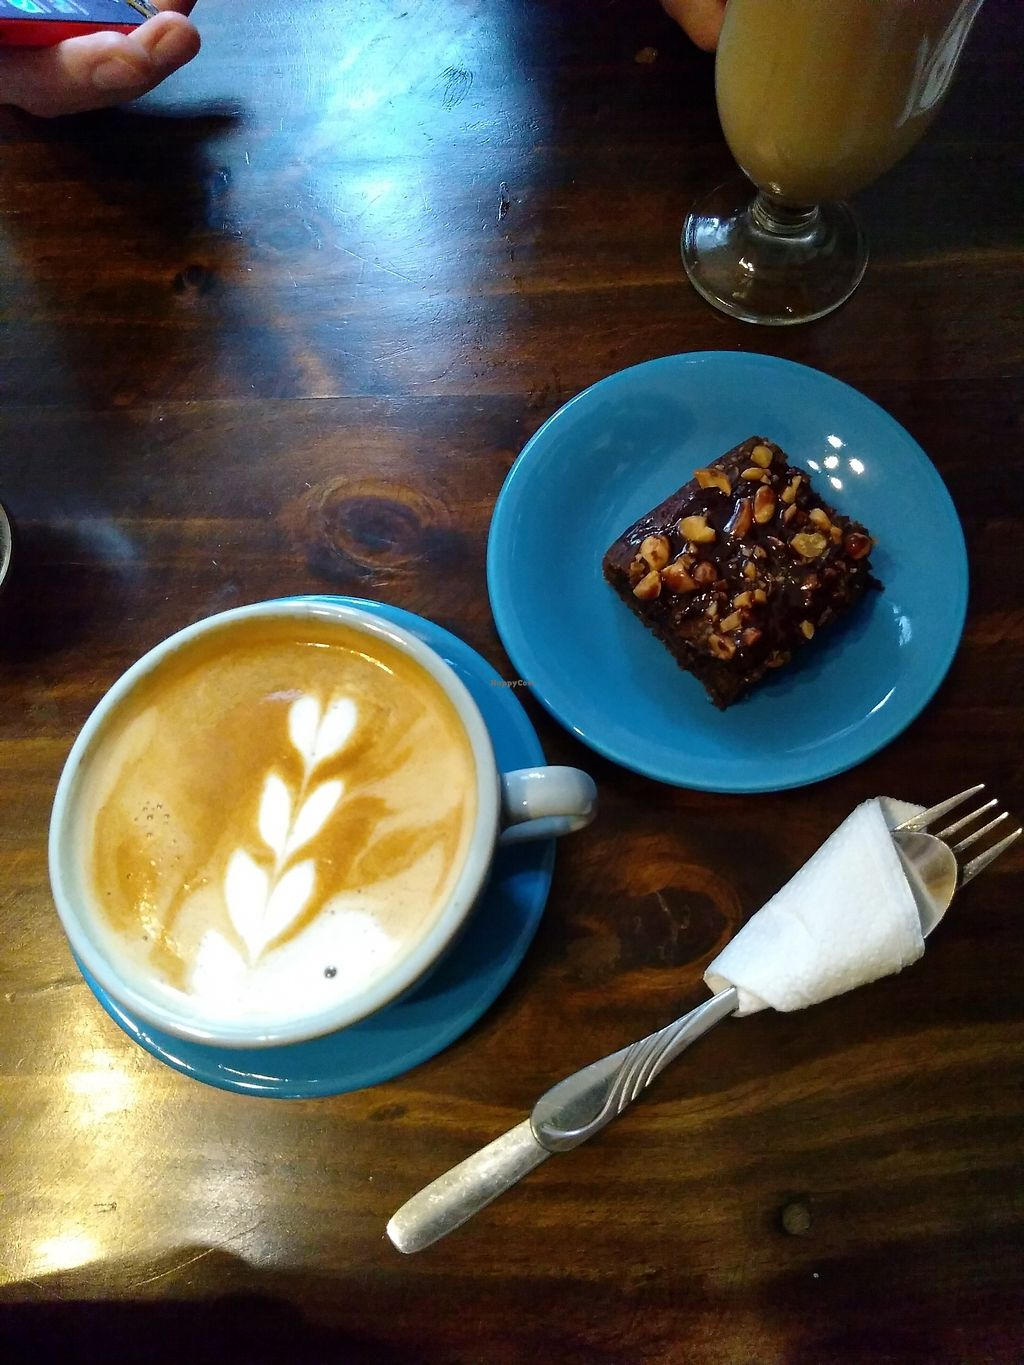 """Photo of Cafe de Nucallacta  by <a href=""""/members/profile/emzie1983"""">emzie1983</a> <br/>Almond milk latte and banana choc peanut brownie <br/> March 10, 2018  - <a href='/contact/abuse/image/113630/368692'>Report</a>"""